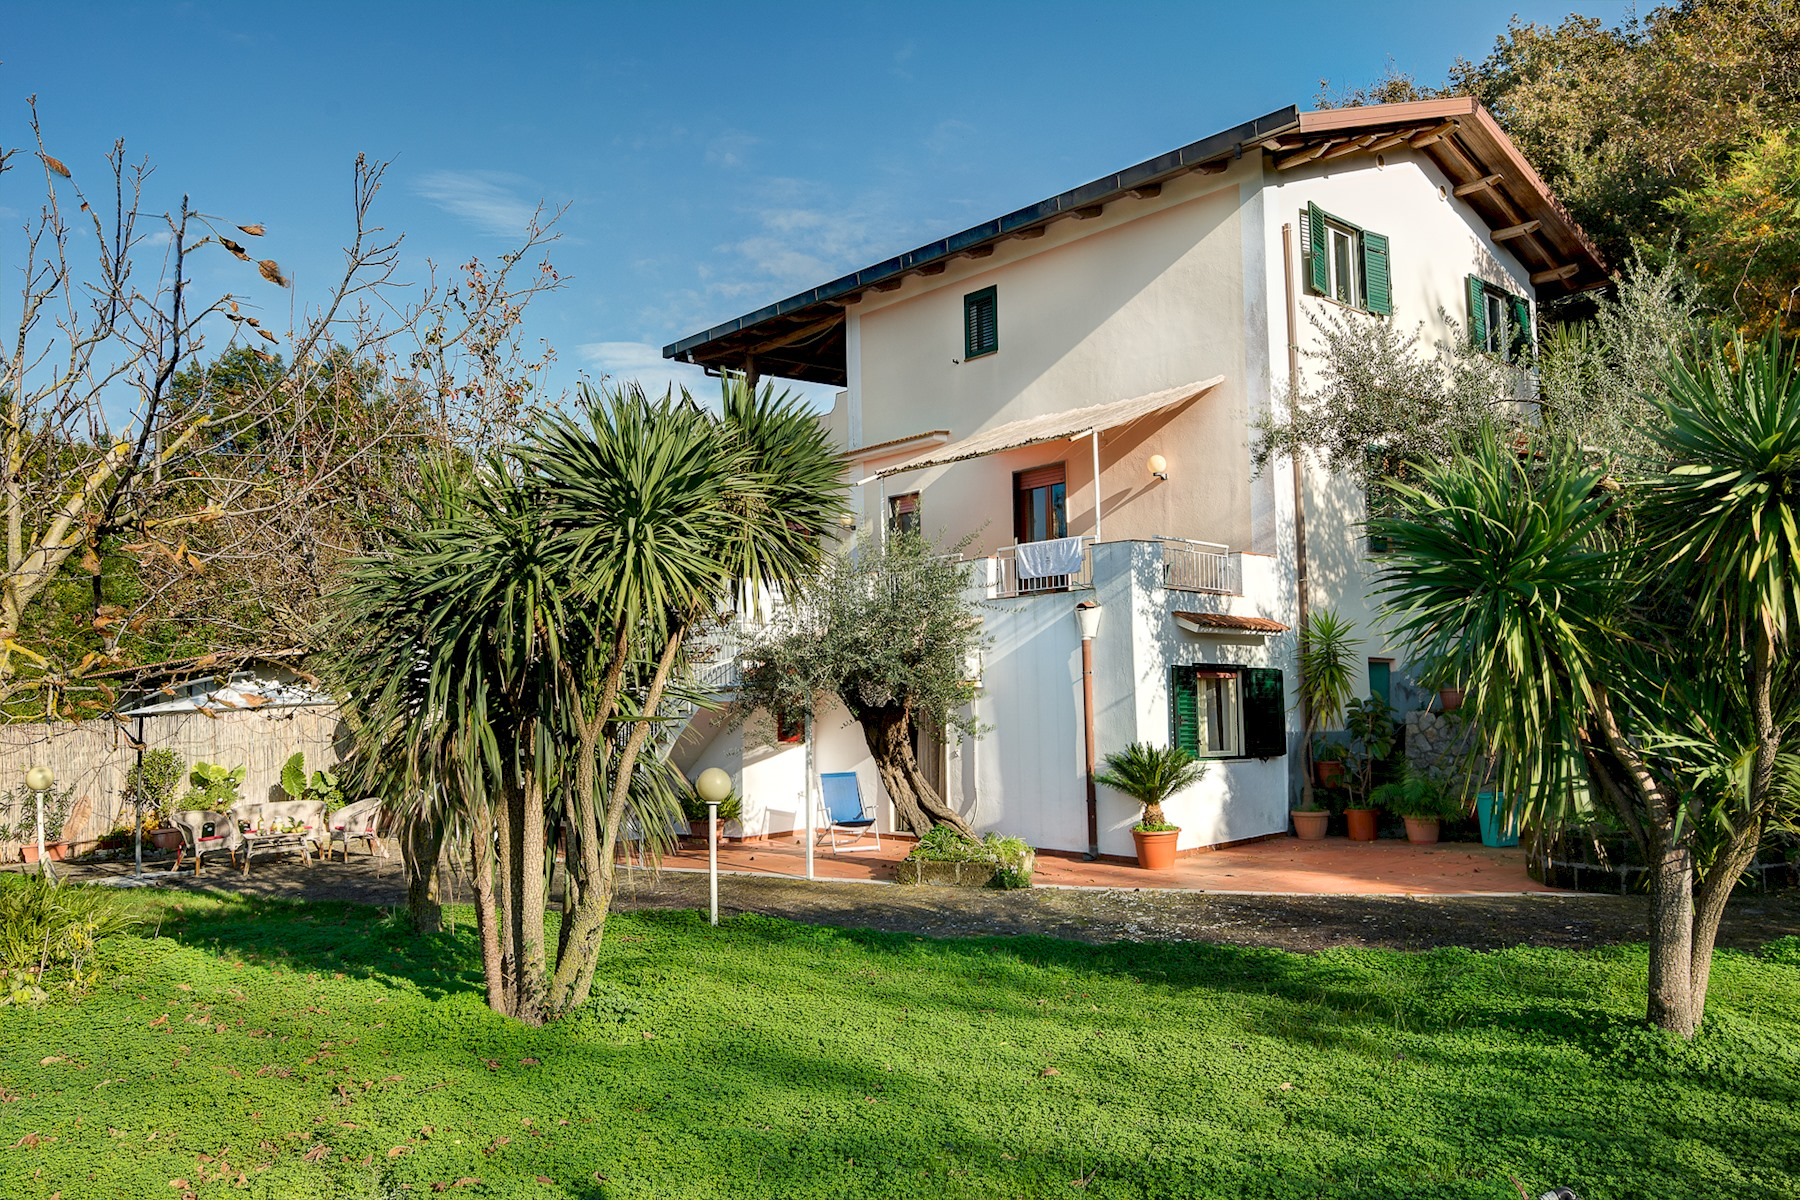 Apartment Villa Serena   Authentic Italian villa in the countryside photo 19862409